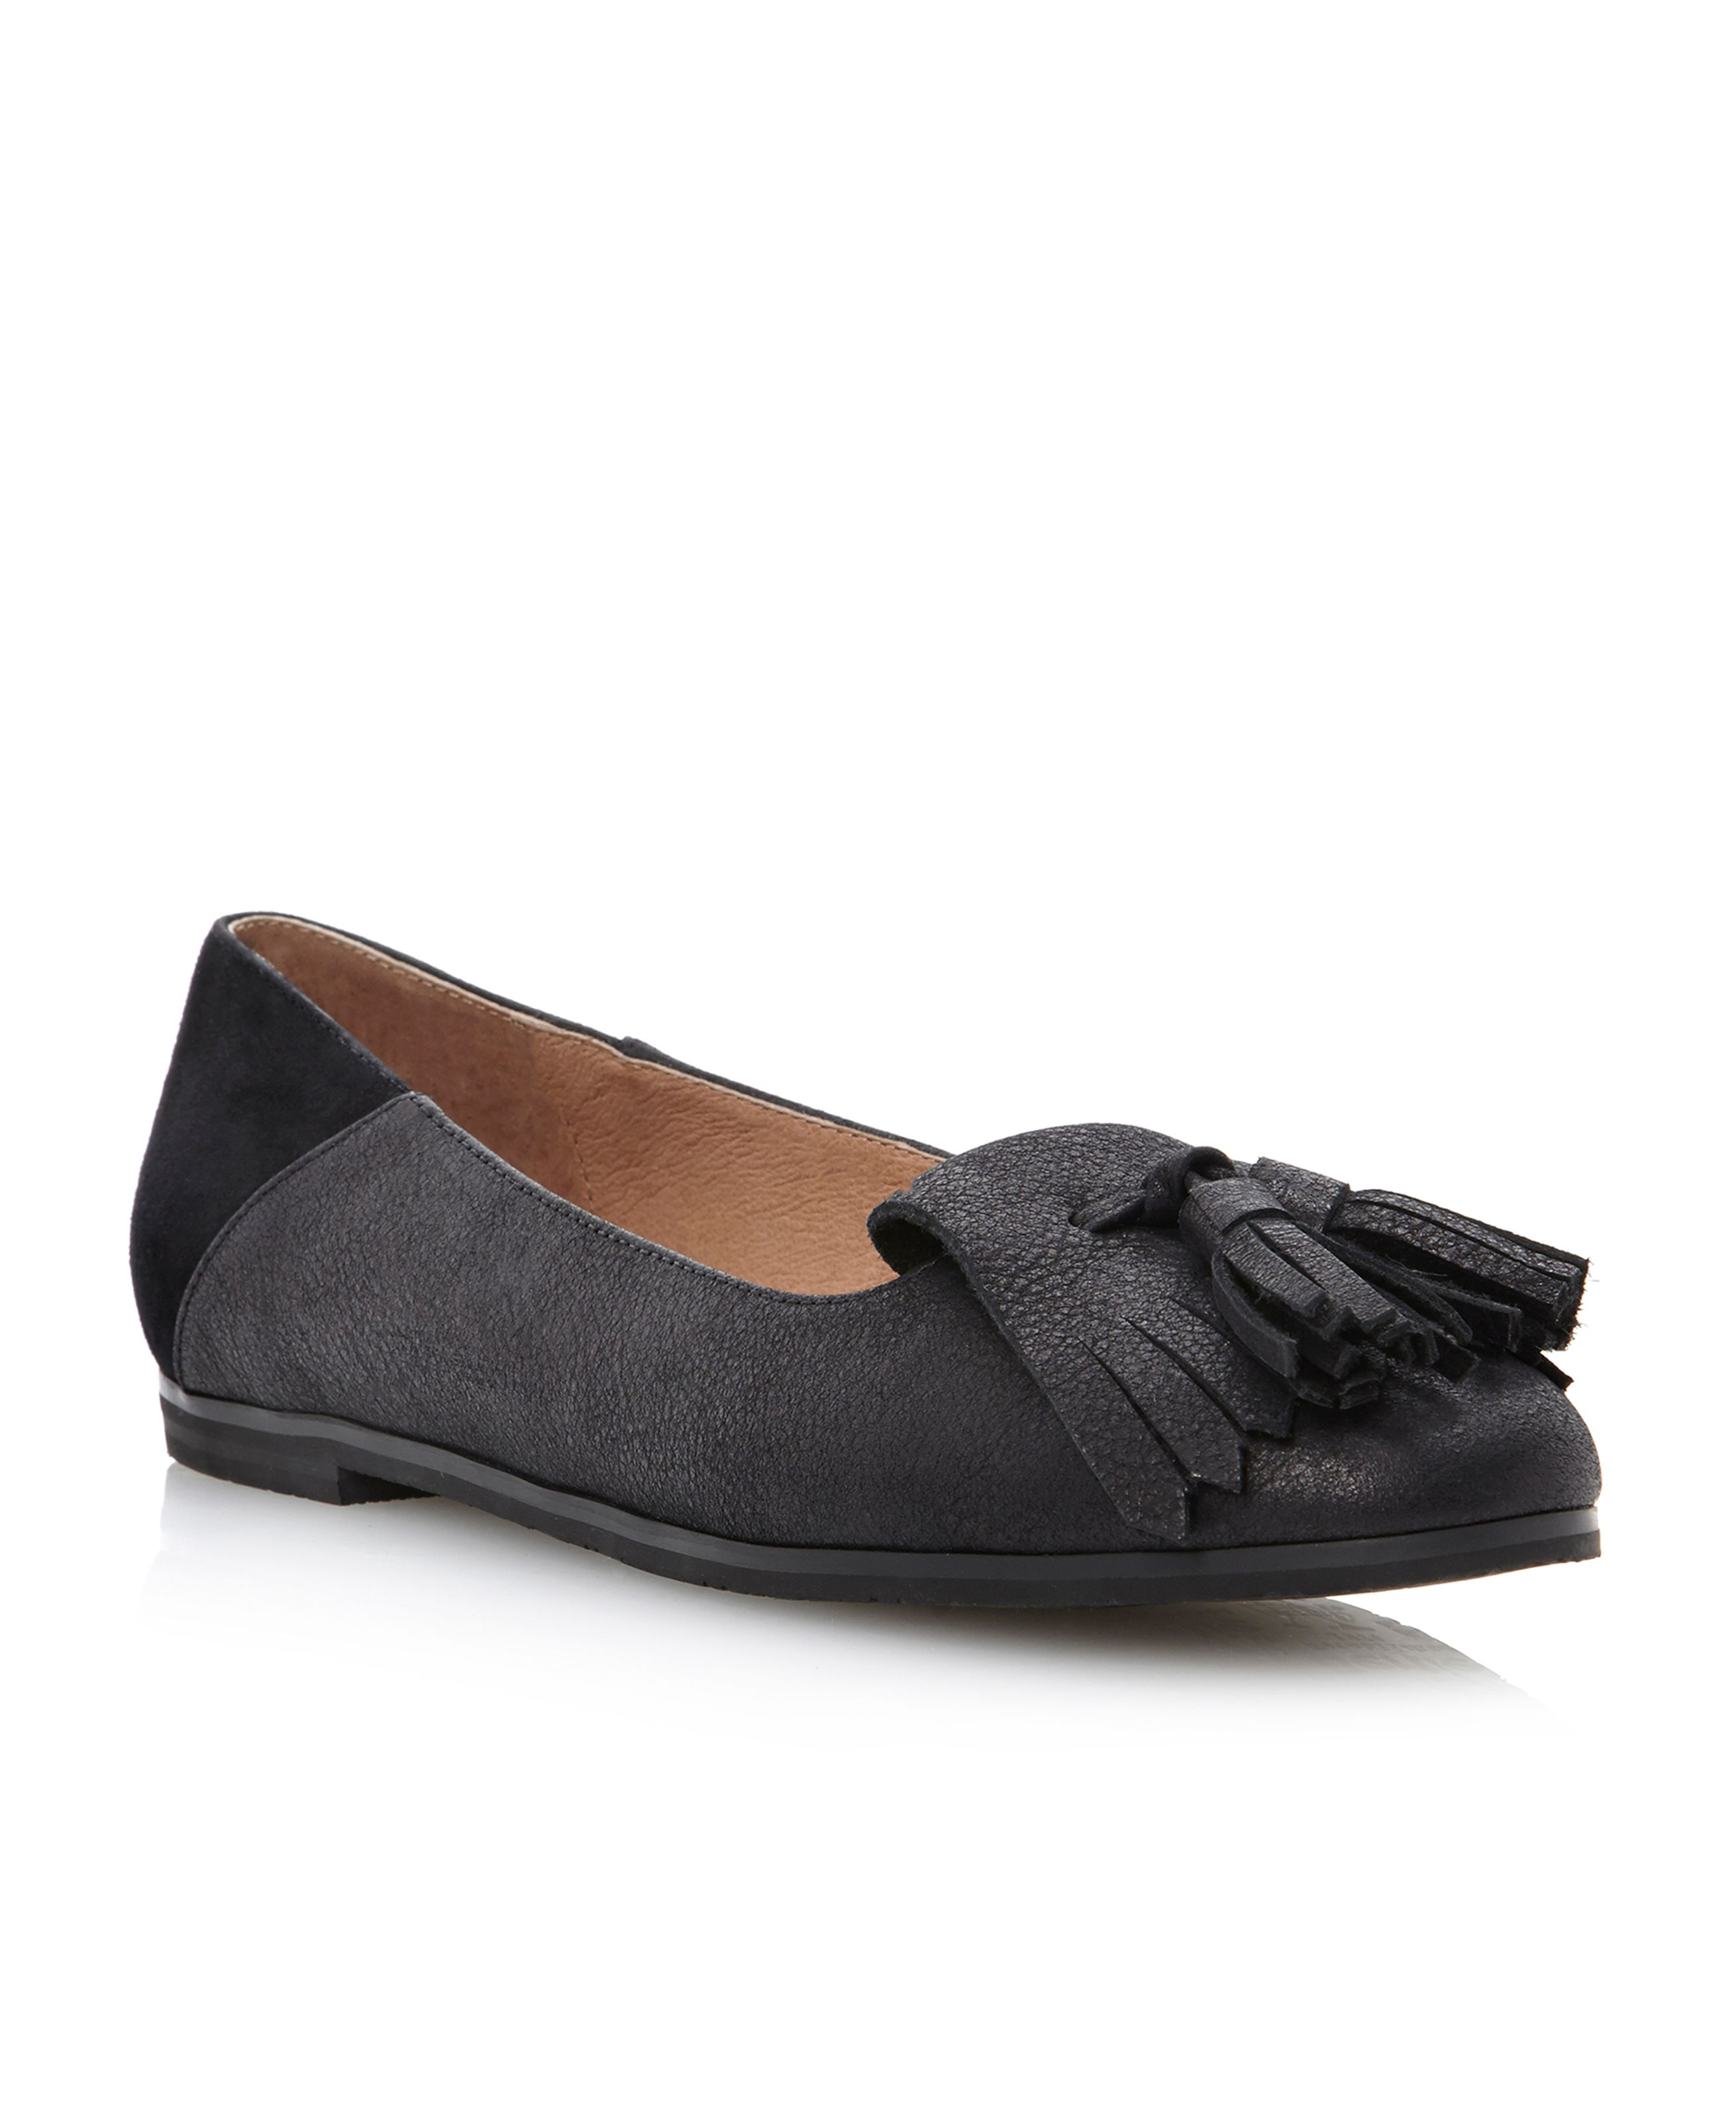 Liza-fringe loafer shoes